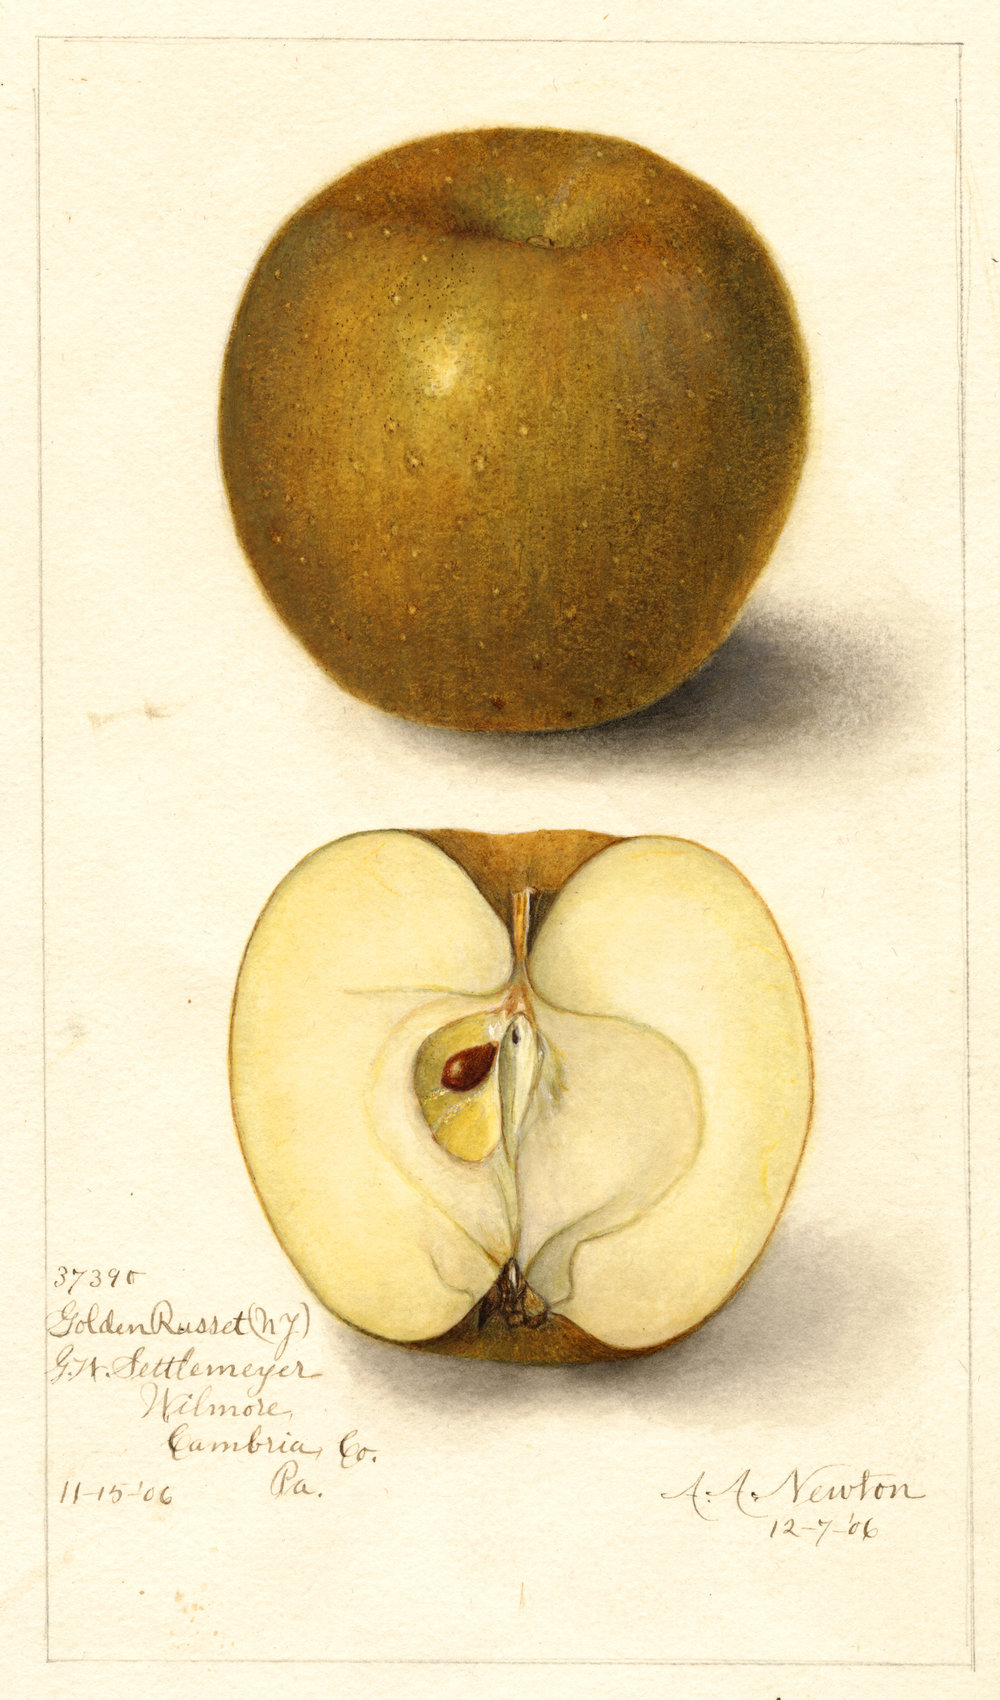 The Venerable Golden Russet possesses remarkable depth of character and should be grown more.